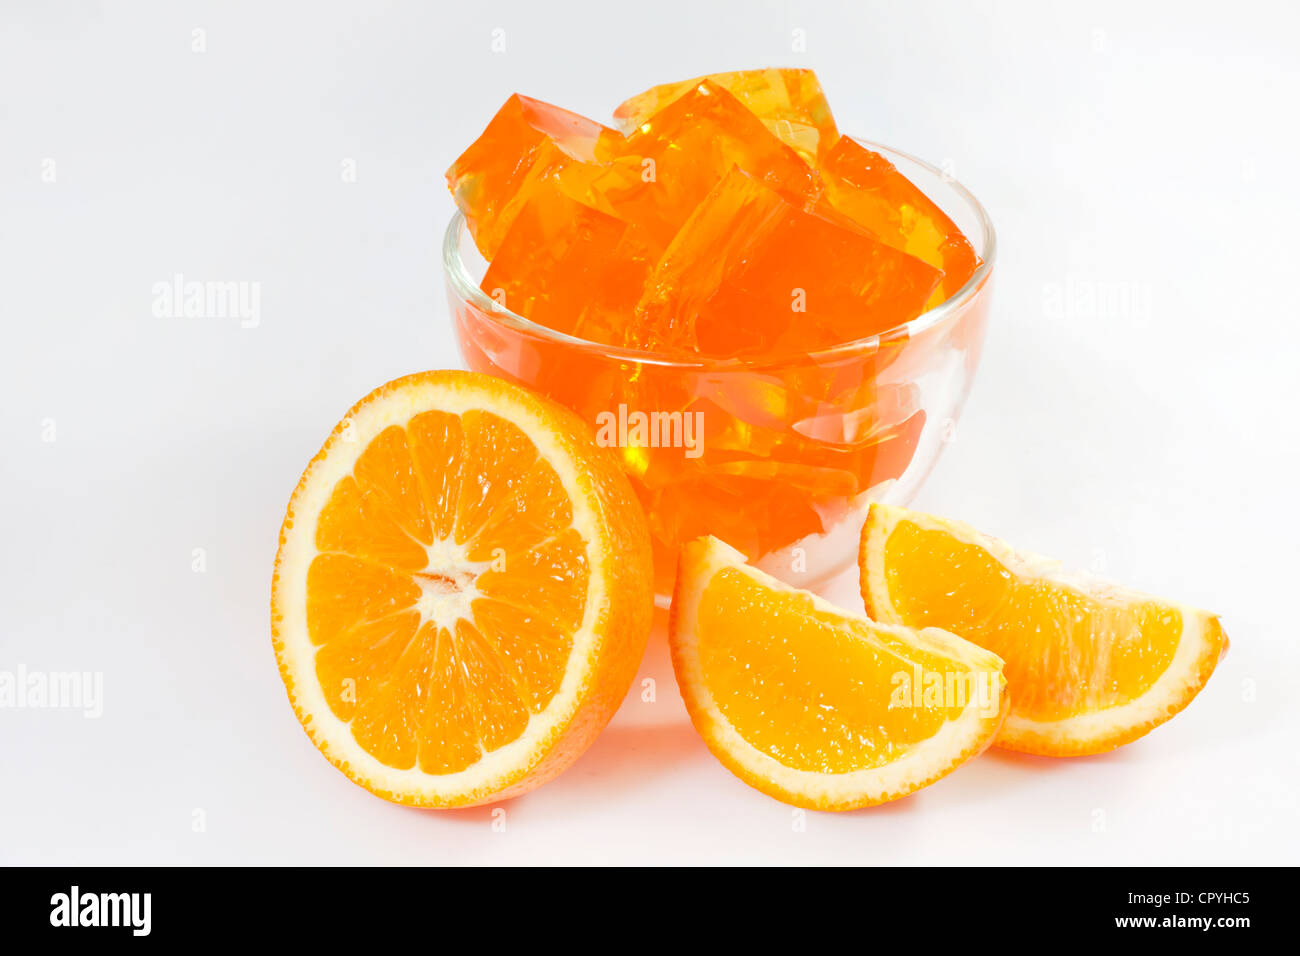 Jelly dessert with oranges on white background - Stock Image